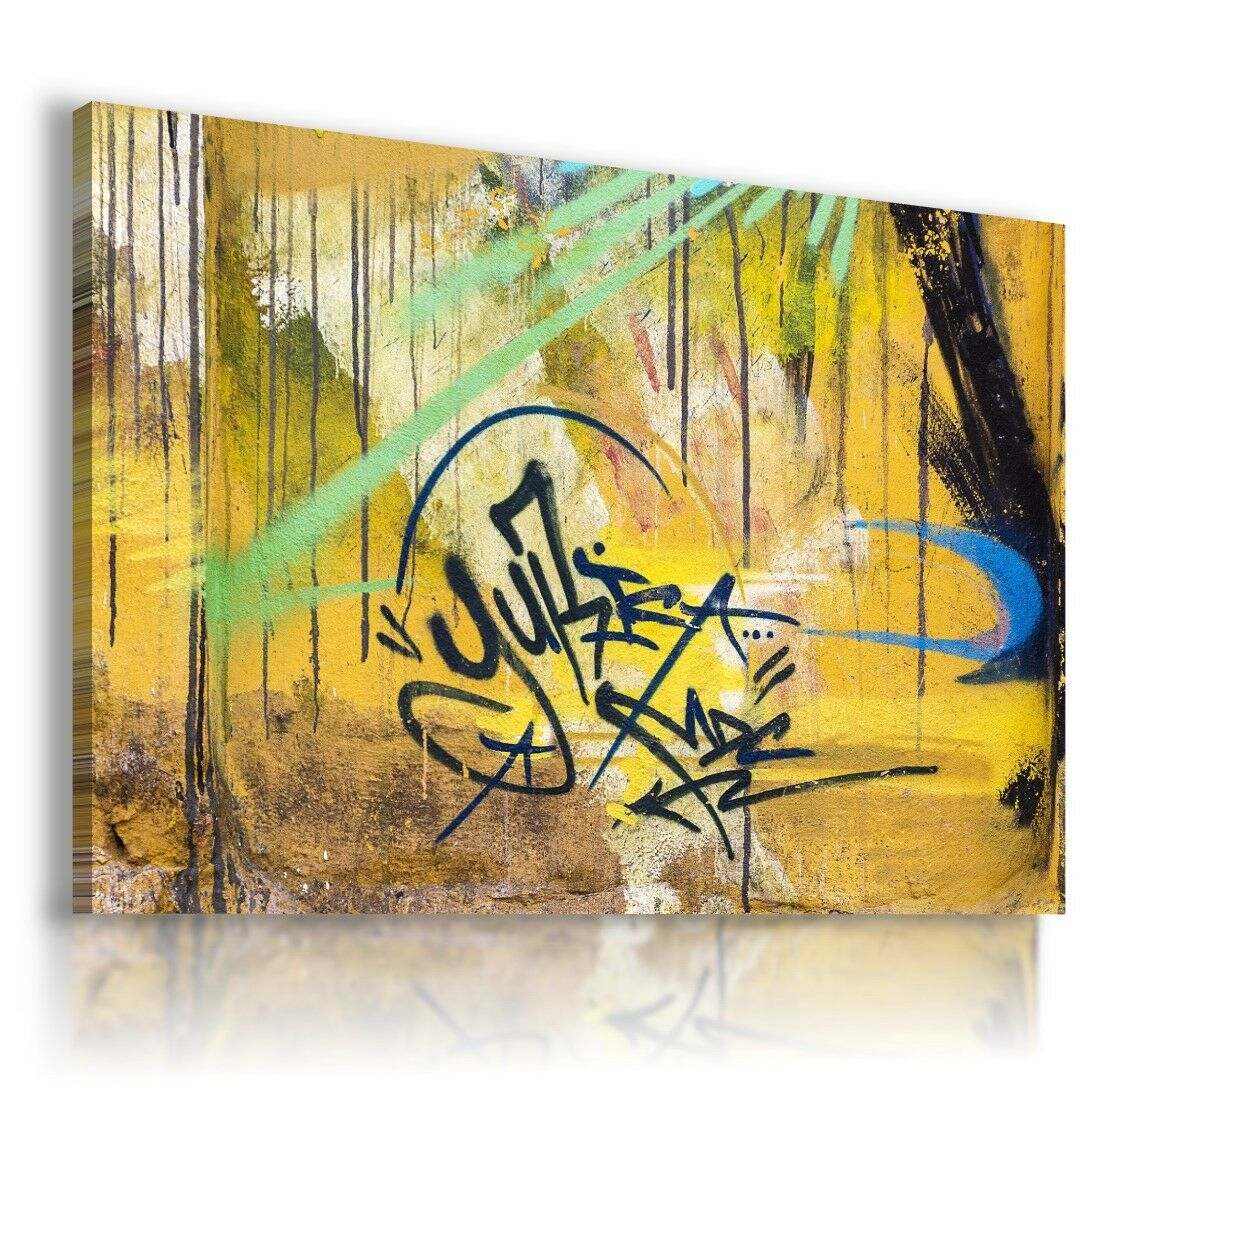 MODERN PATTERN ABSTRACT PAINT CANVAS WALL ART PICTURE LARGE WS118 X